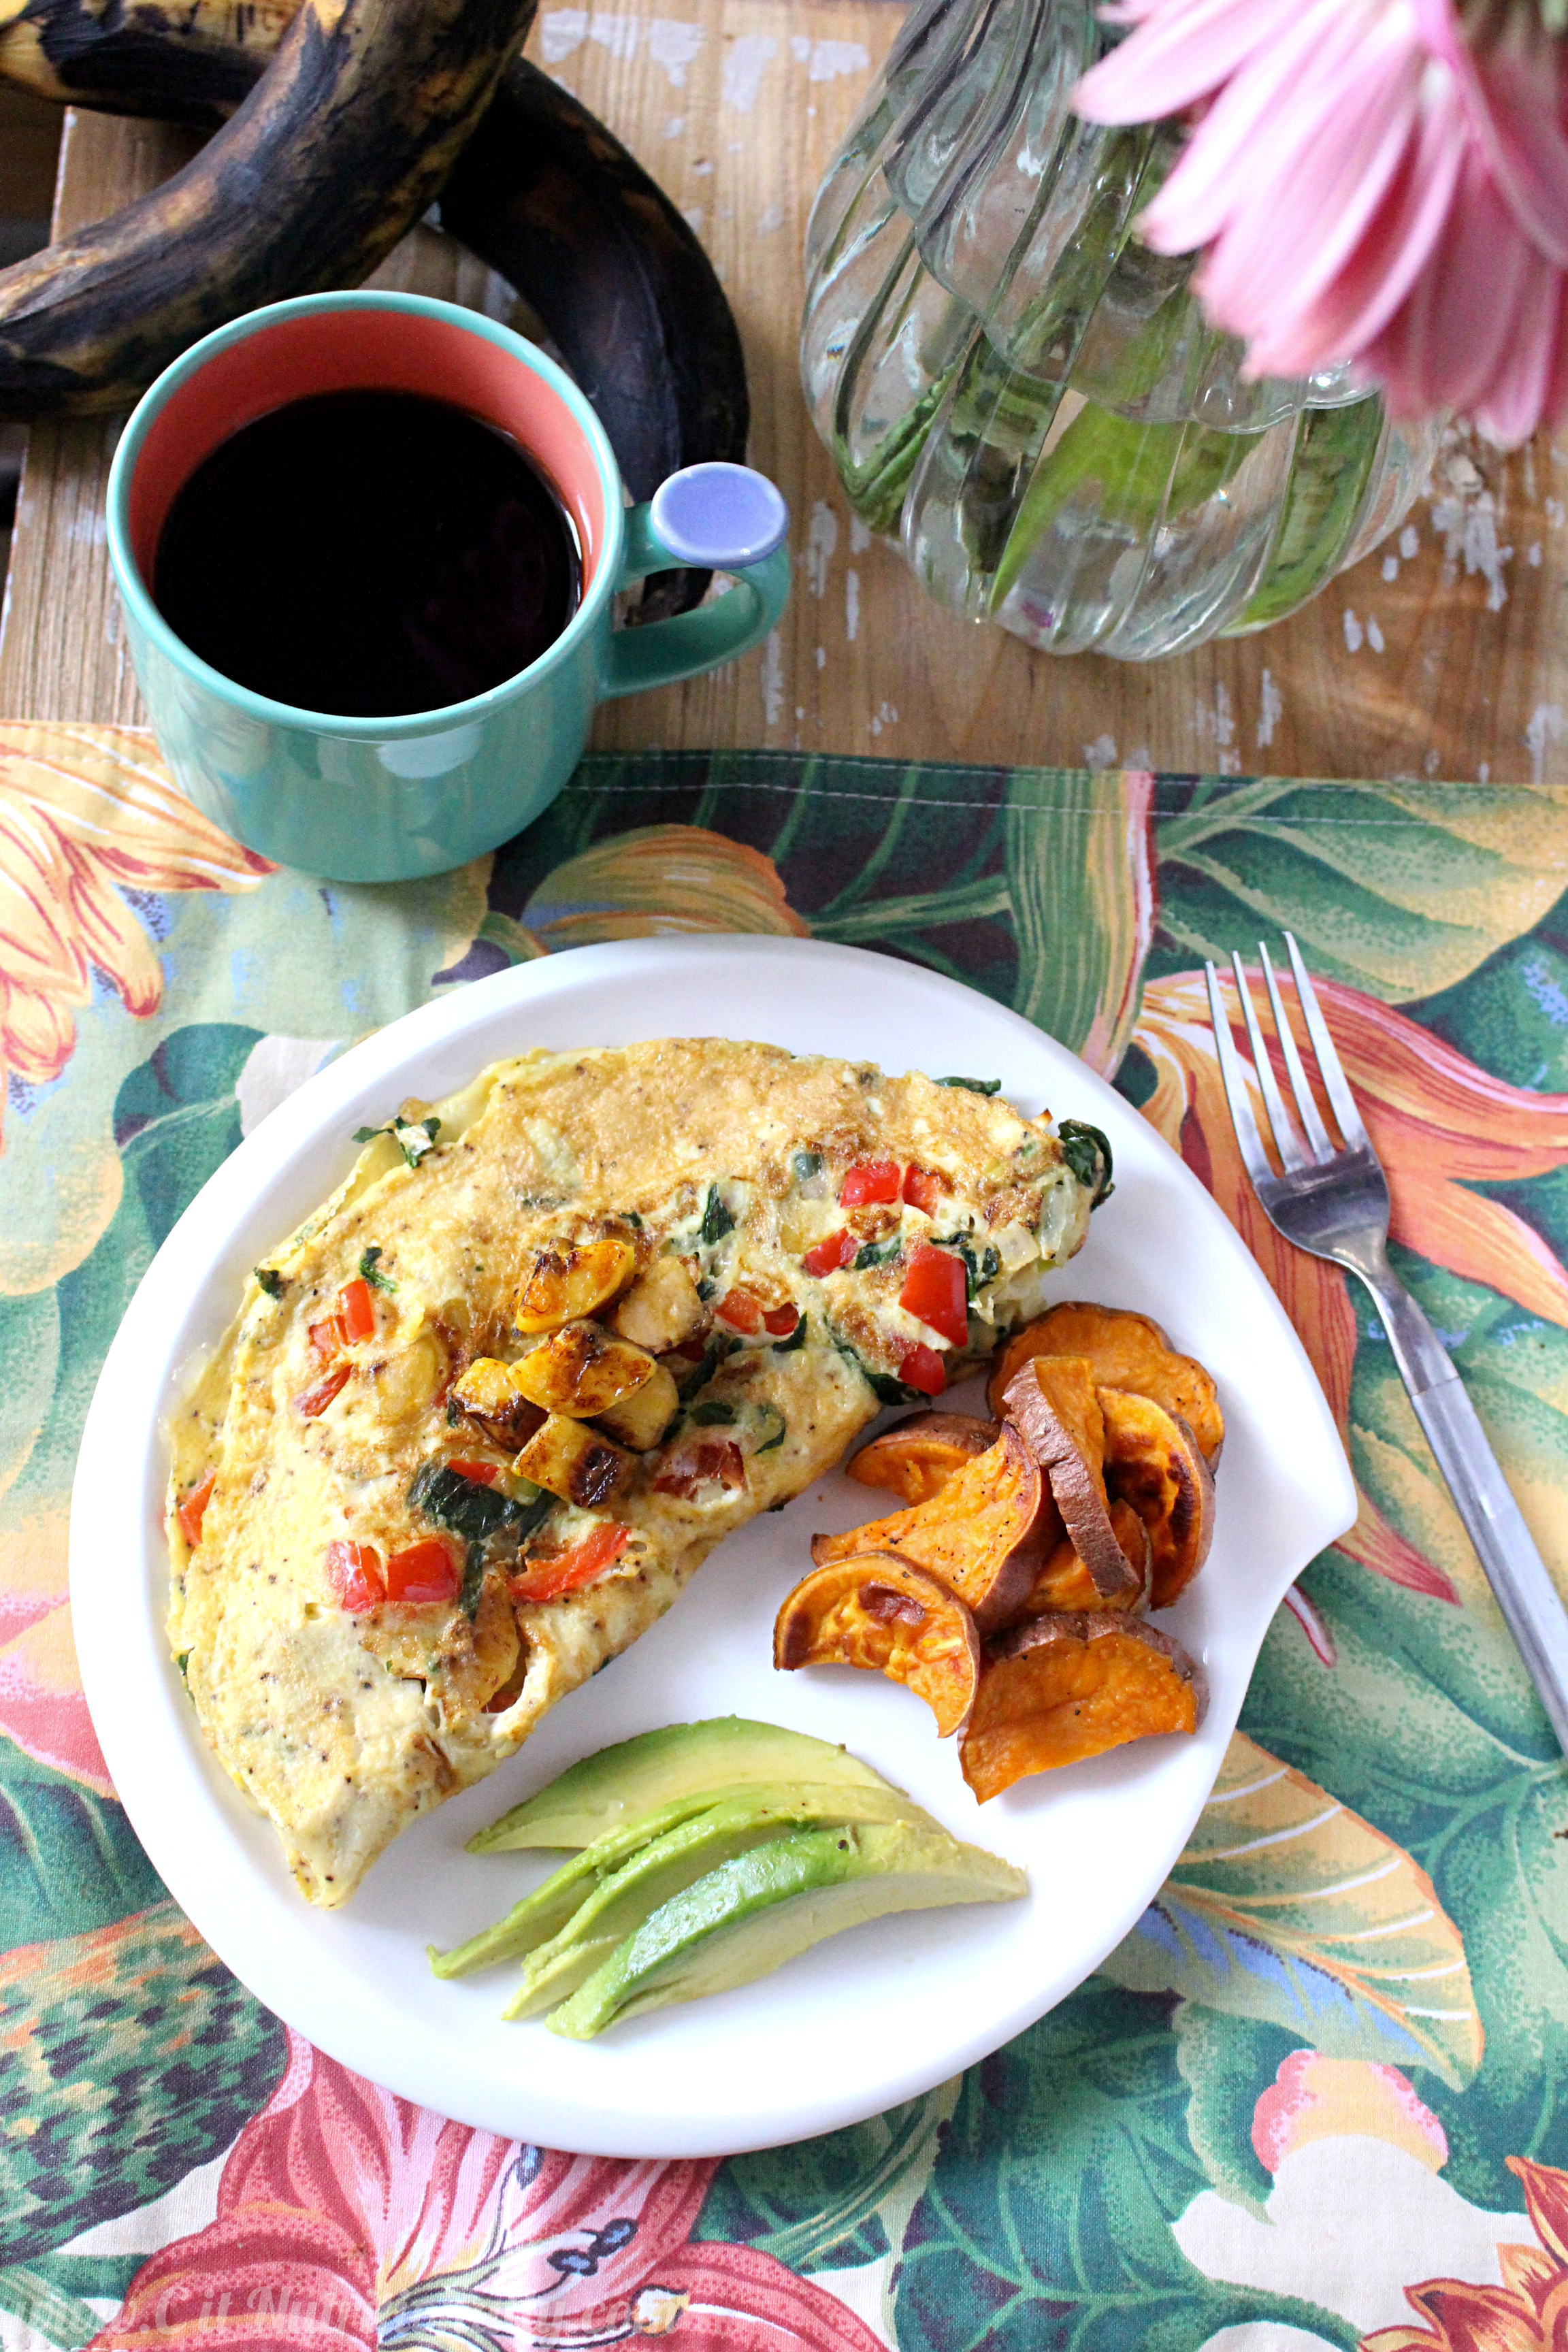 Puerto rican omelette c it nutritionally puerto rican omelette forumfinder Image collections